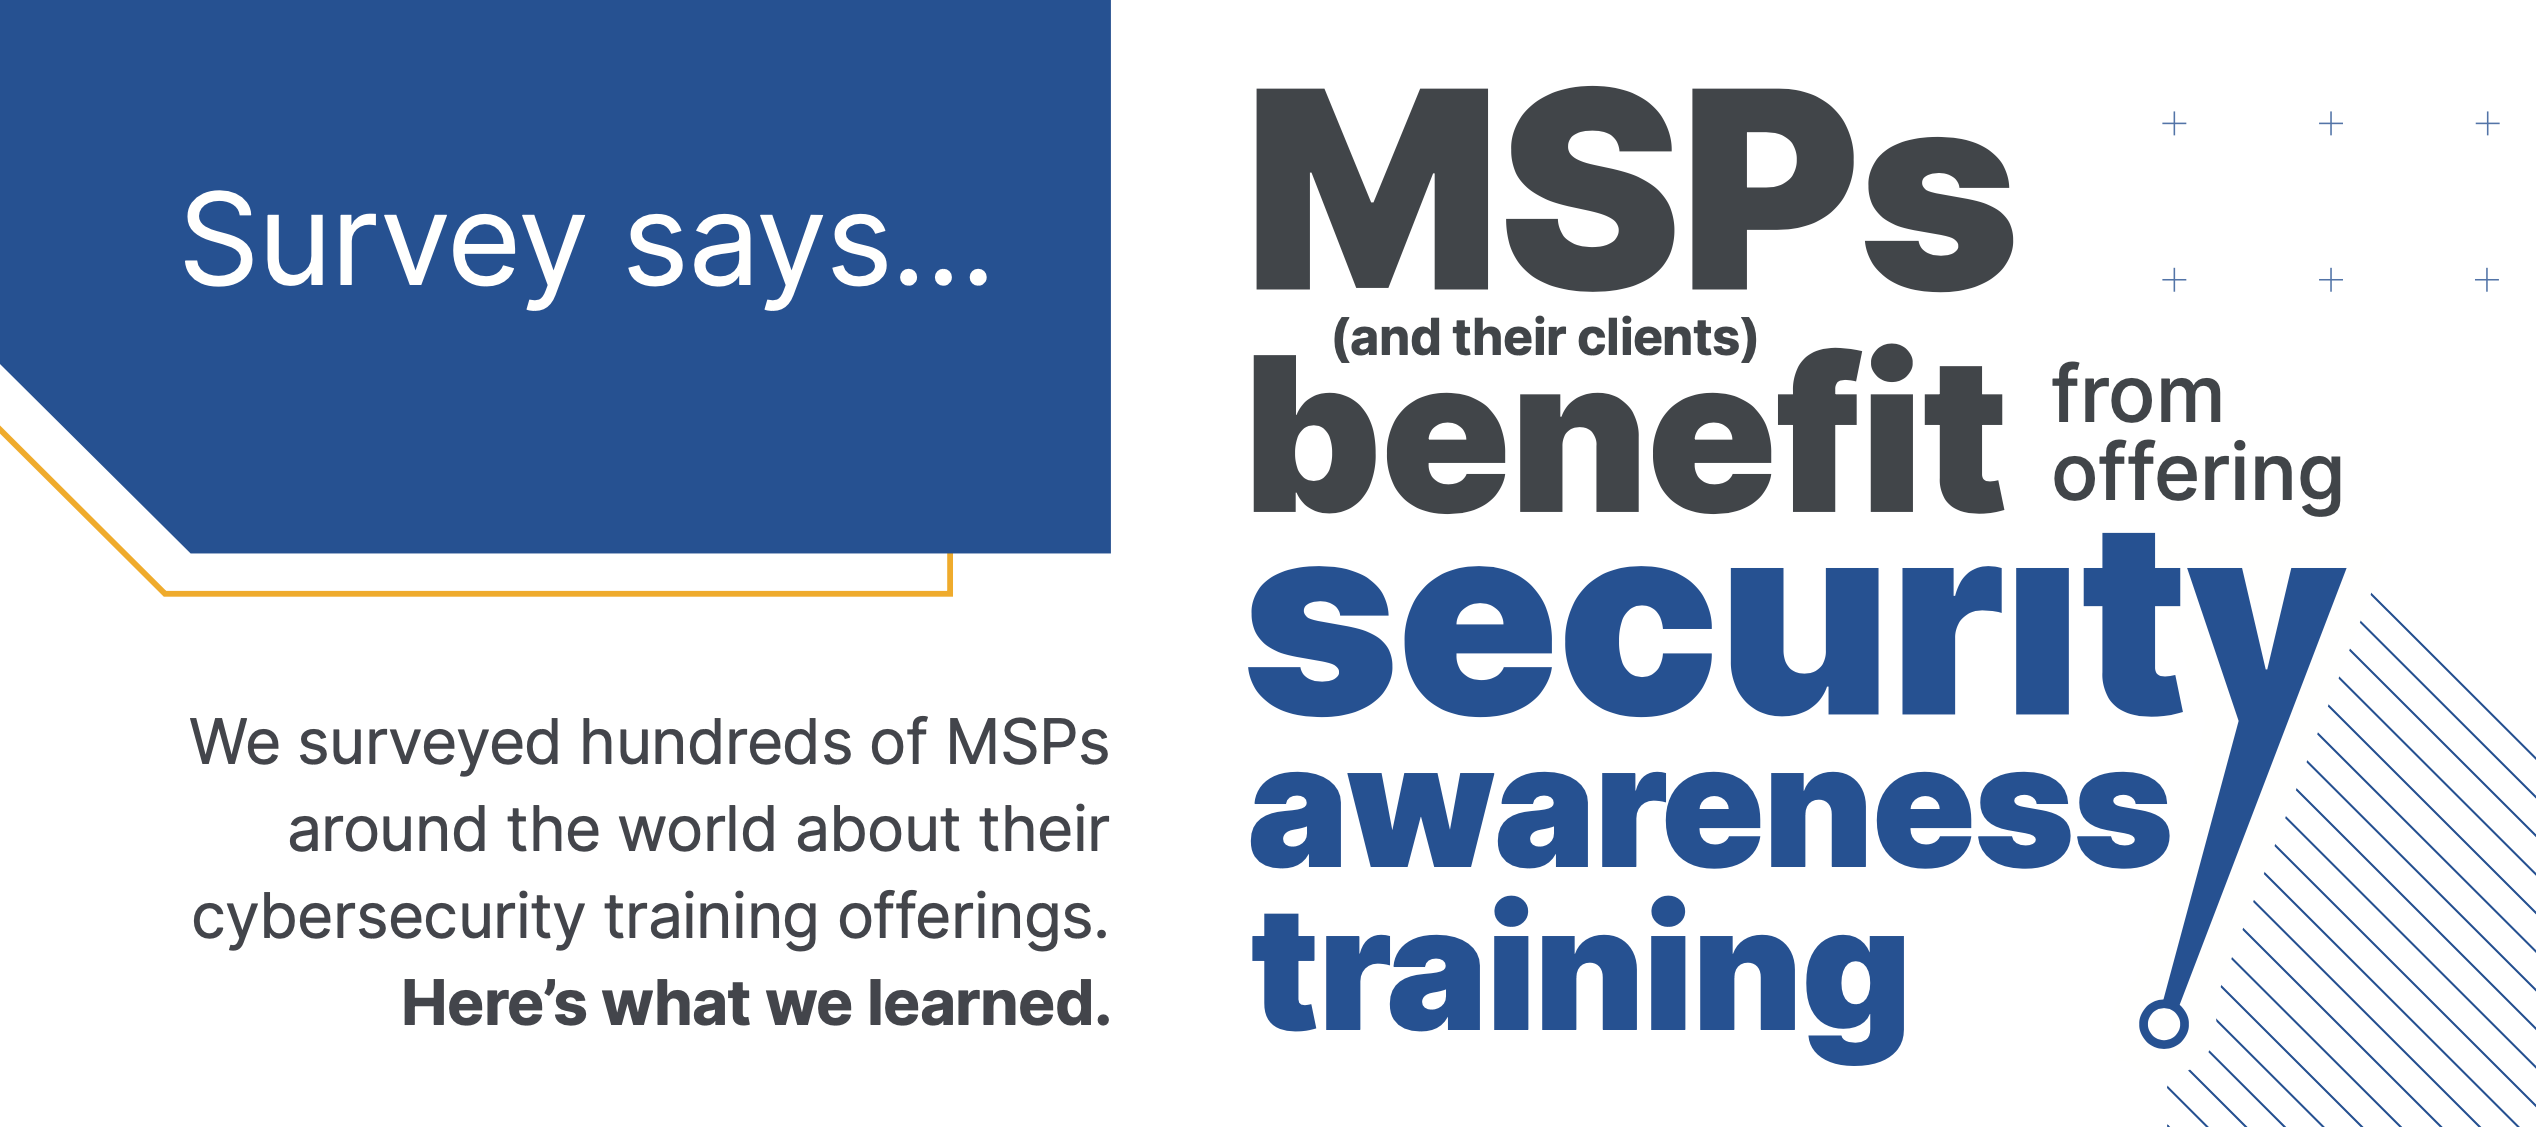 [Infographic] MSPs benefit from Security Awareness Training